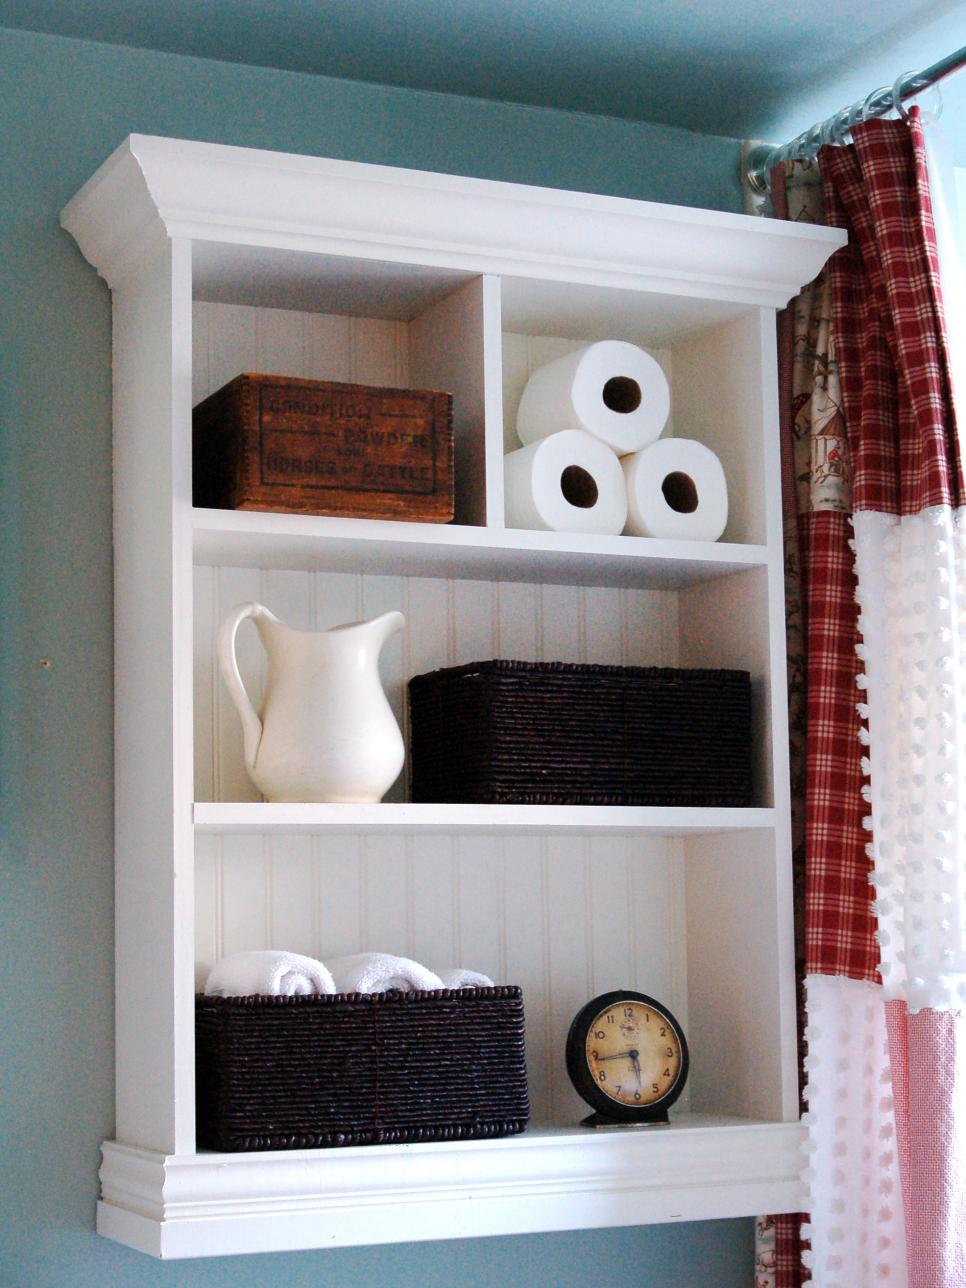 Clever Bathroom Storage Ideas HGTV - Bathroom shelving ideas for towels for small bathroom ideas